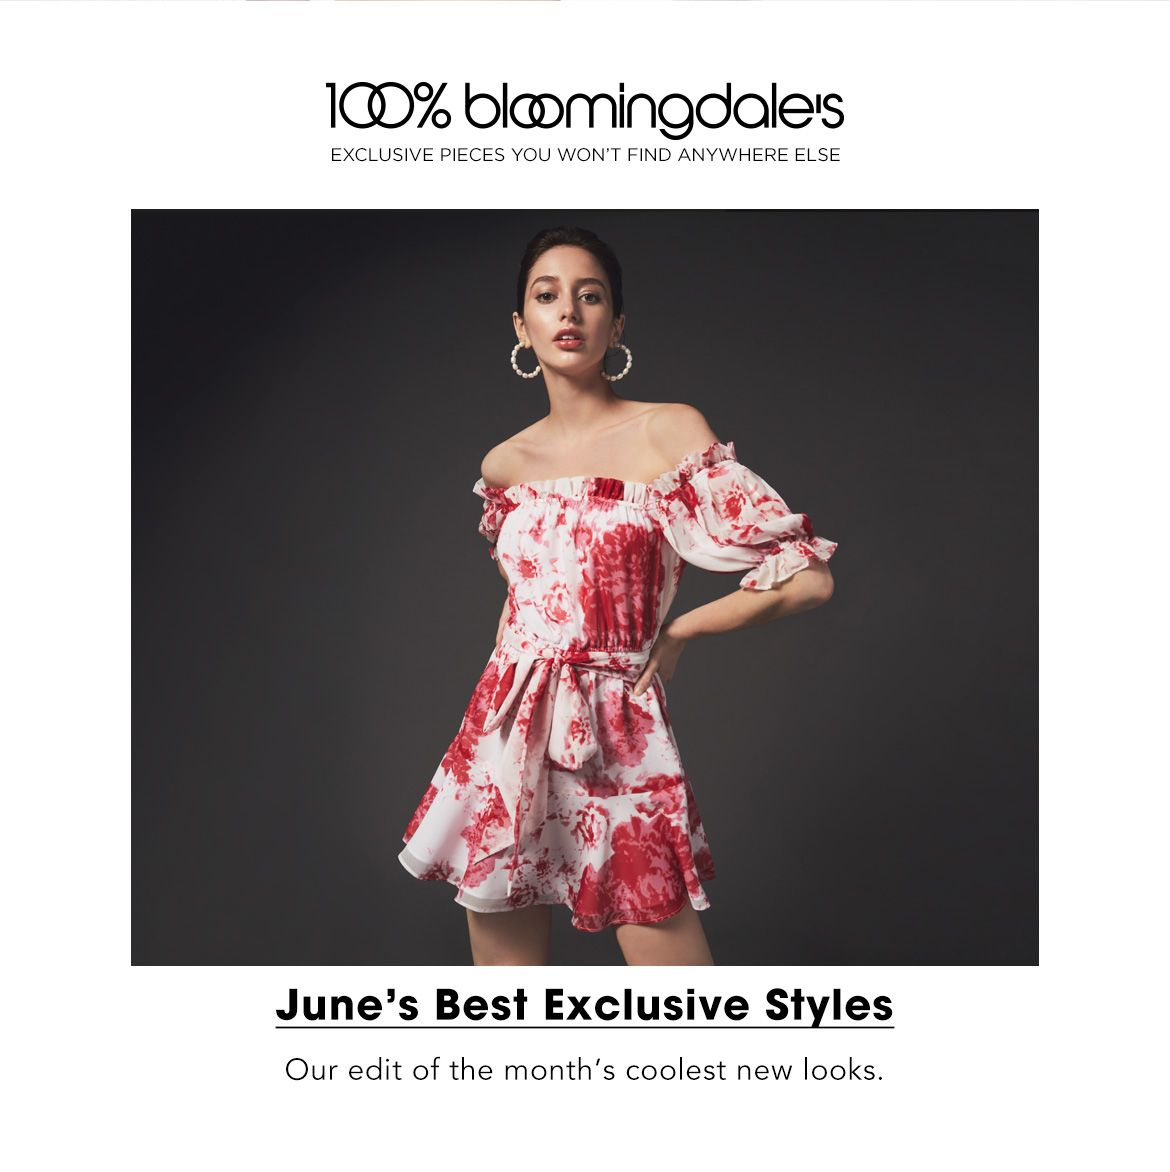 930a92ad7aed3 New Fashion Trends - Spring 2019 - Bloomingdale's